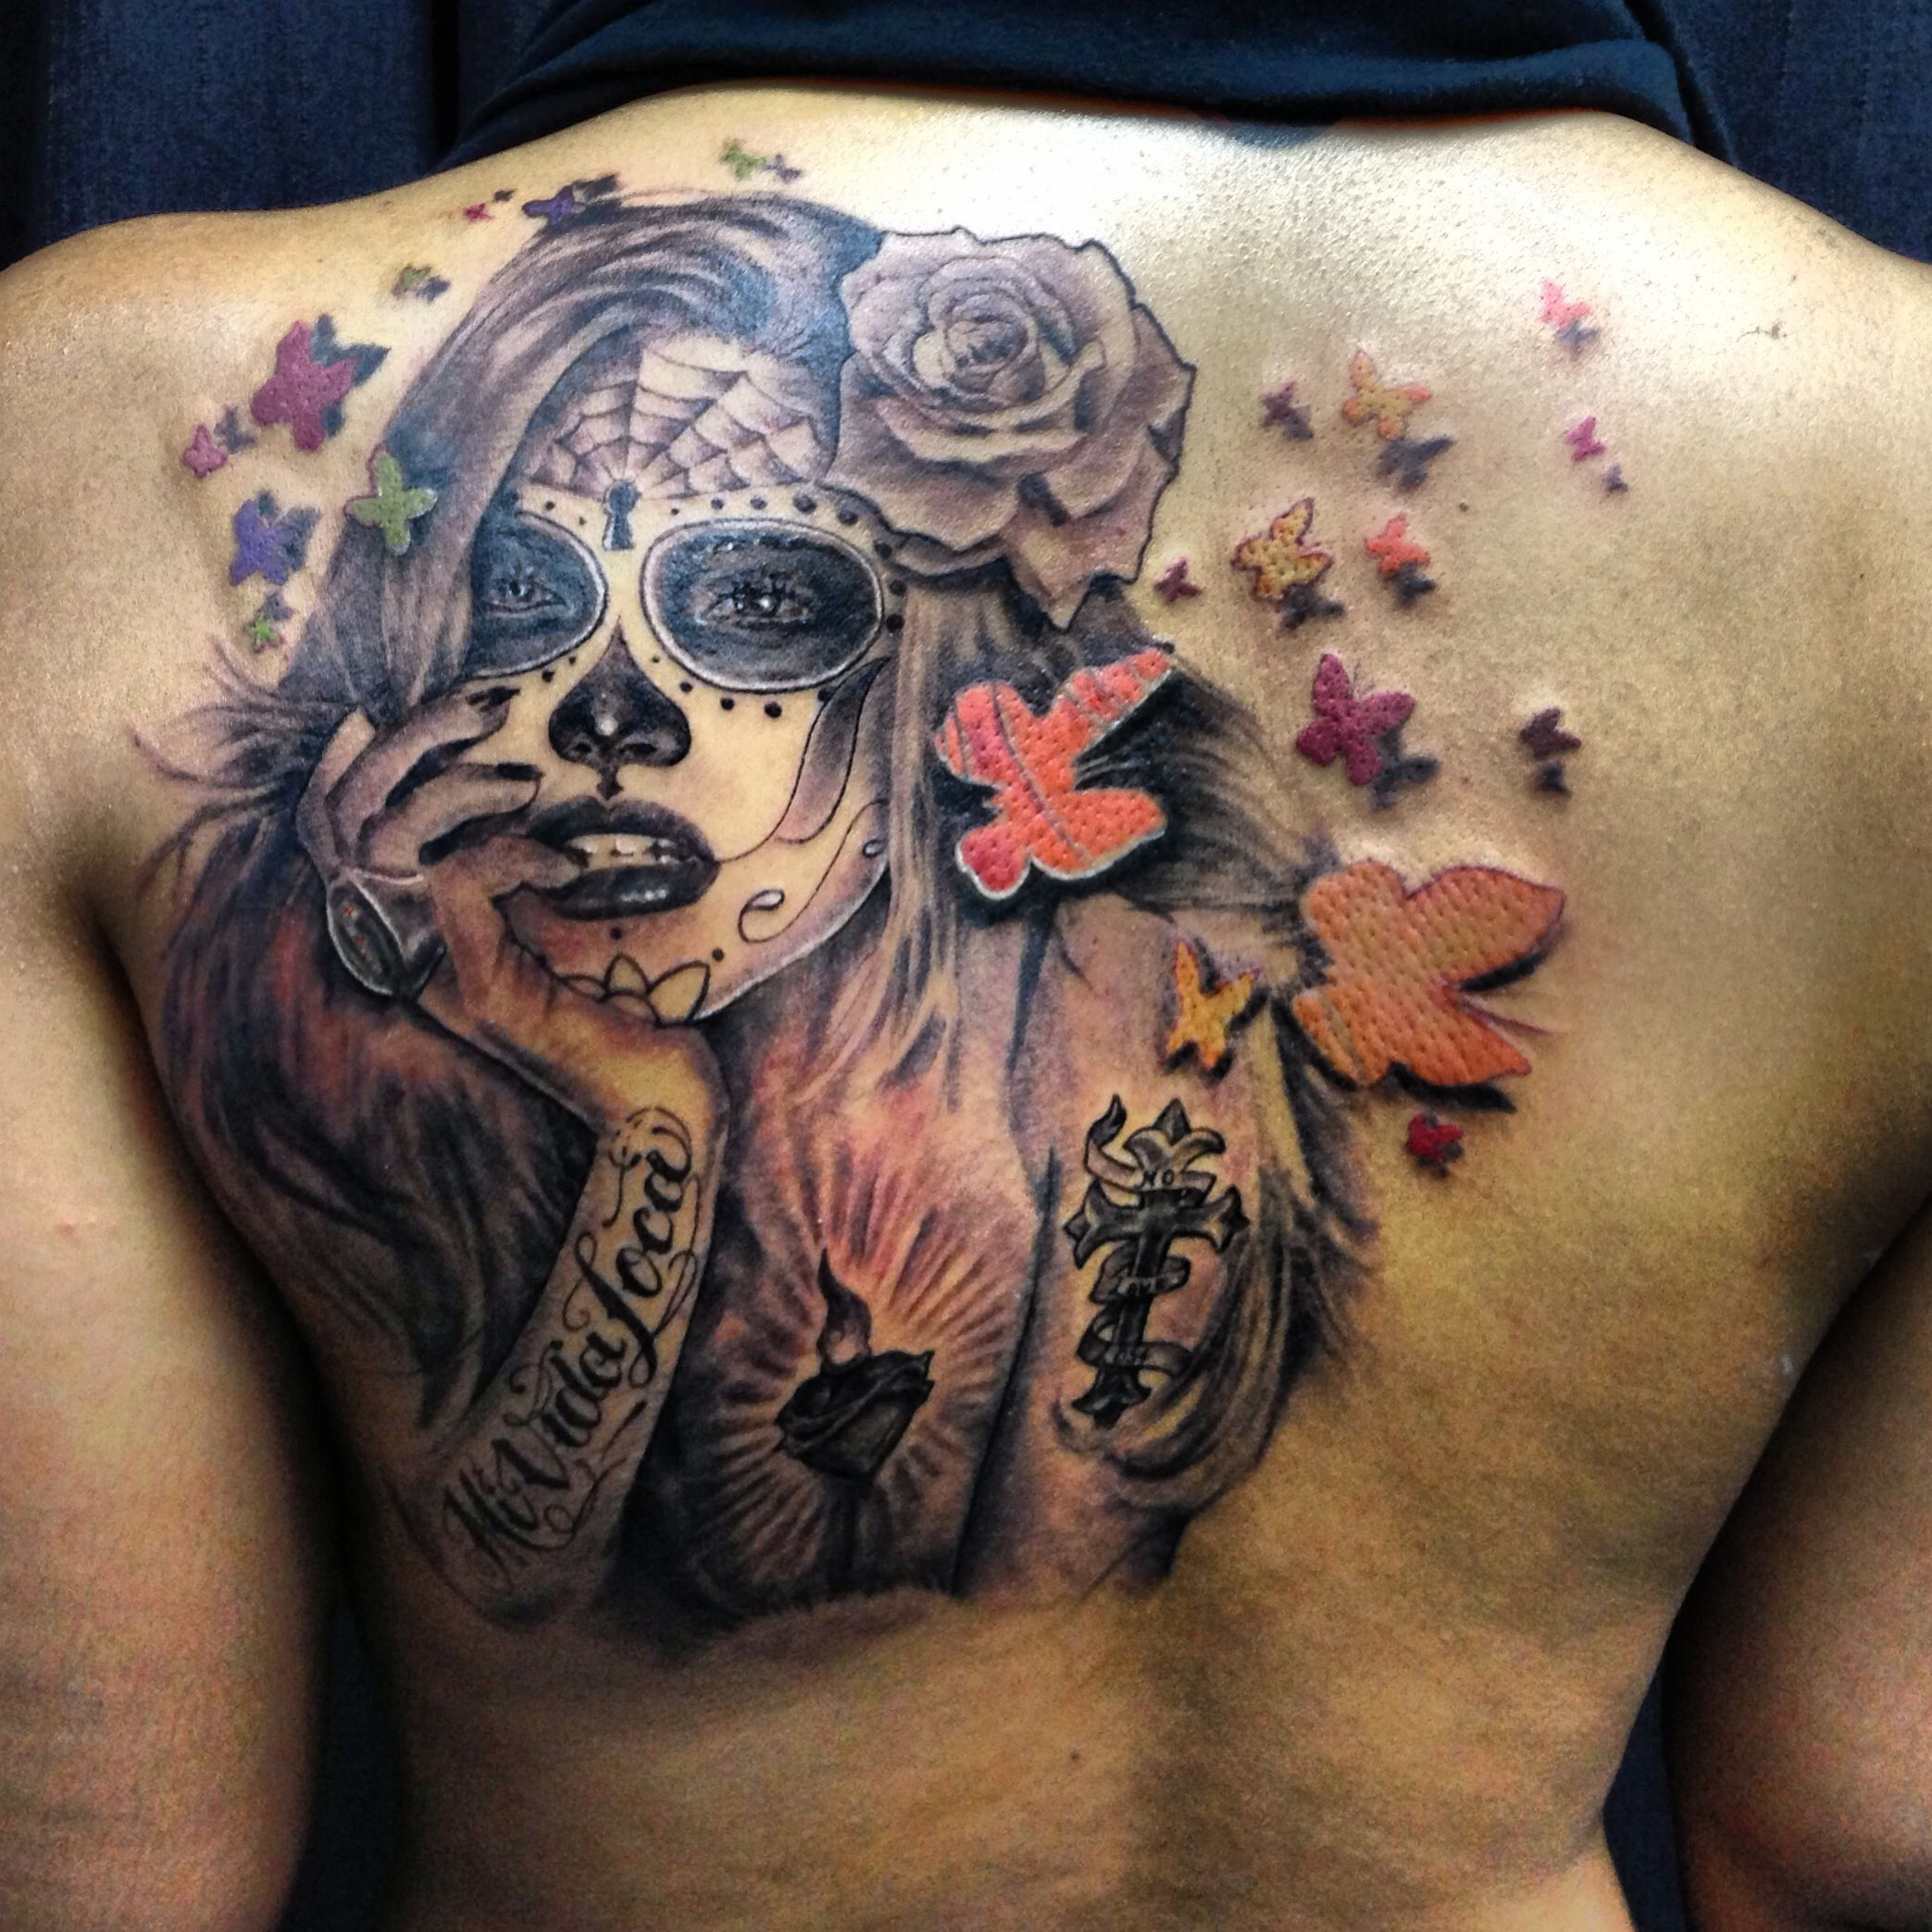 My Tattoo Day Of The Dead Adriana Lima Suger Skull Ideas And Designs